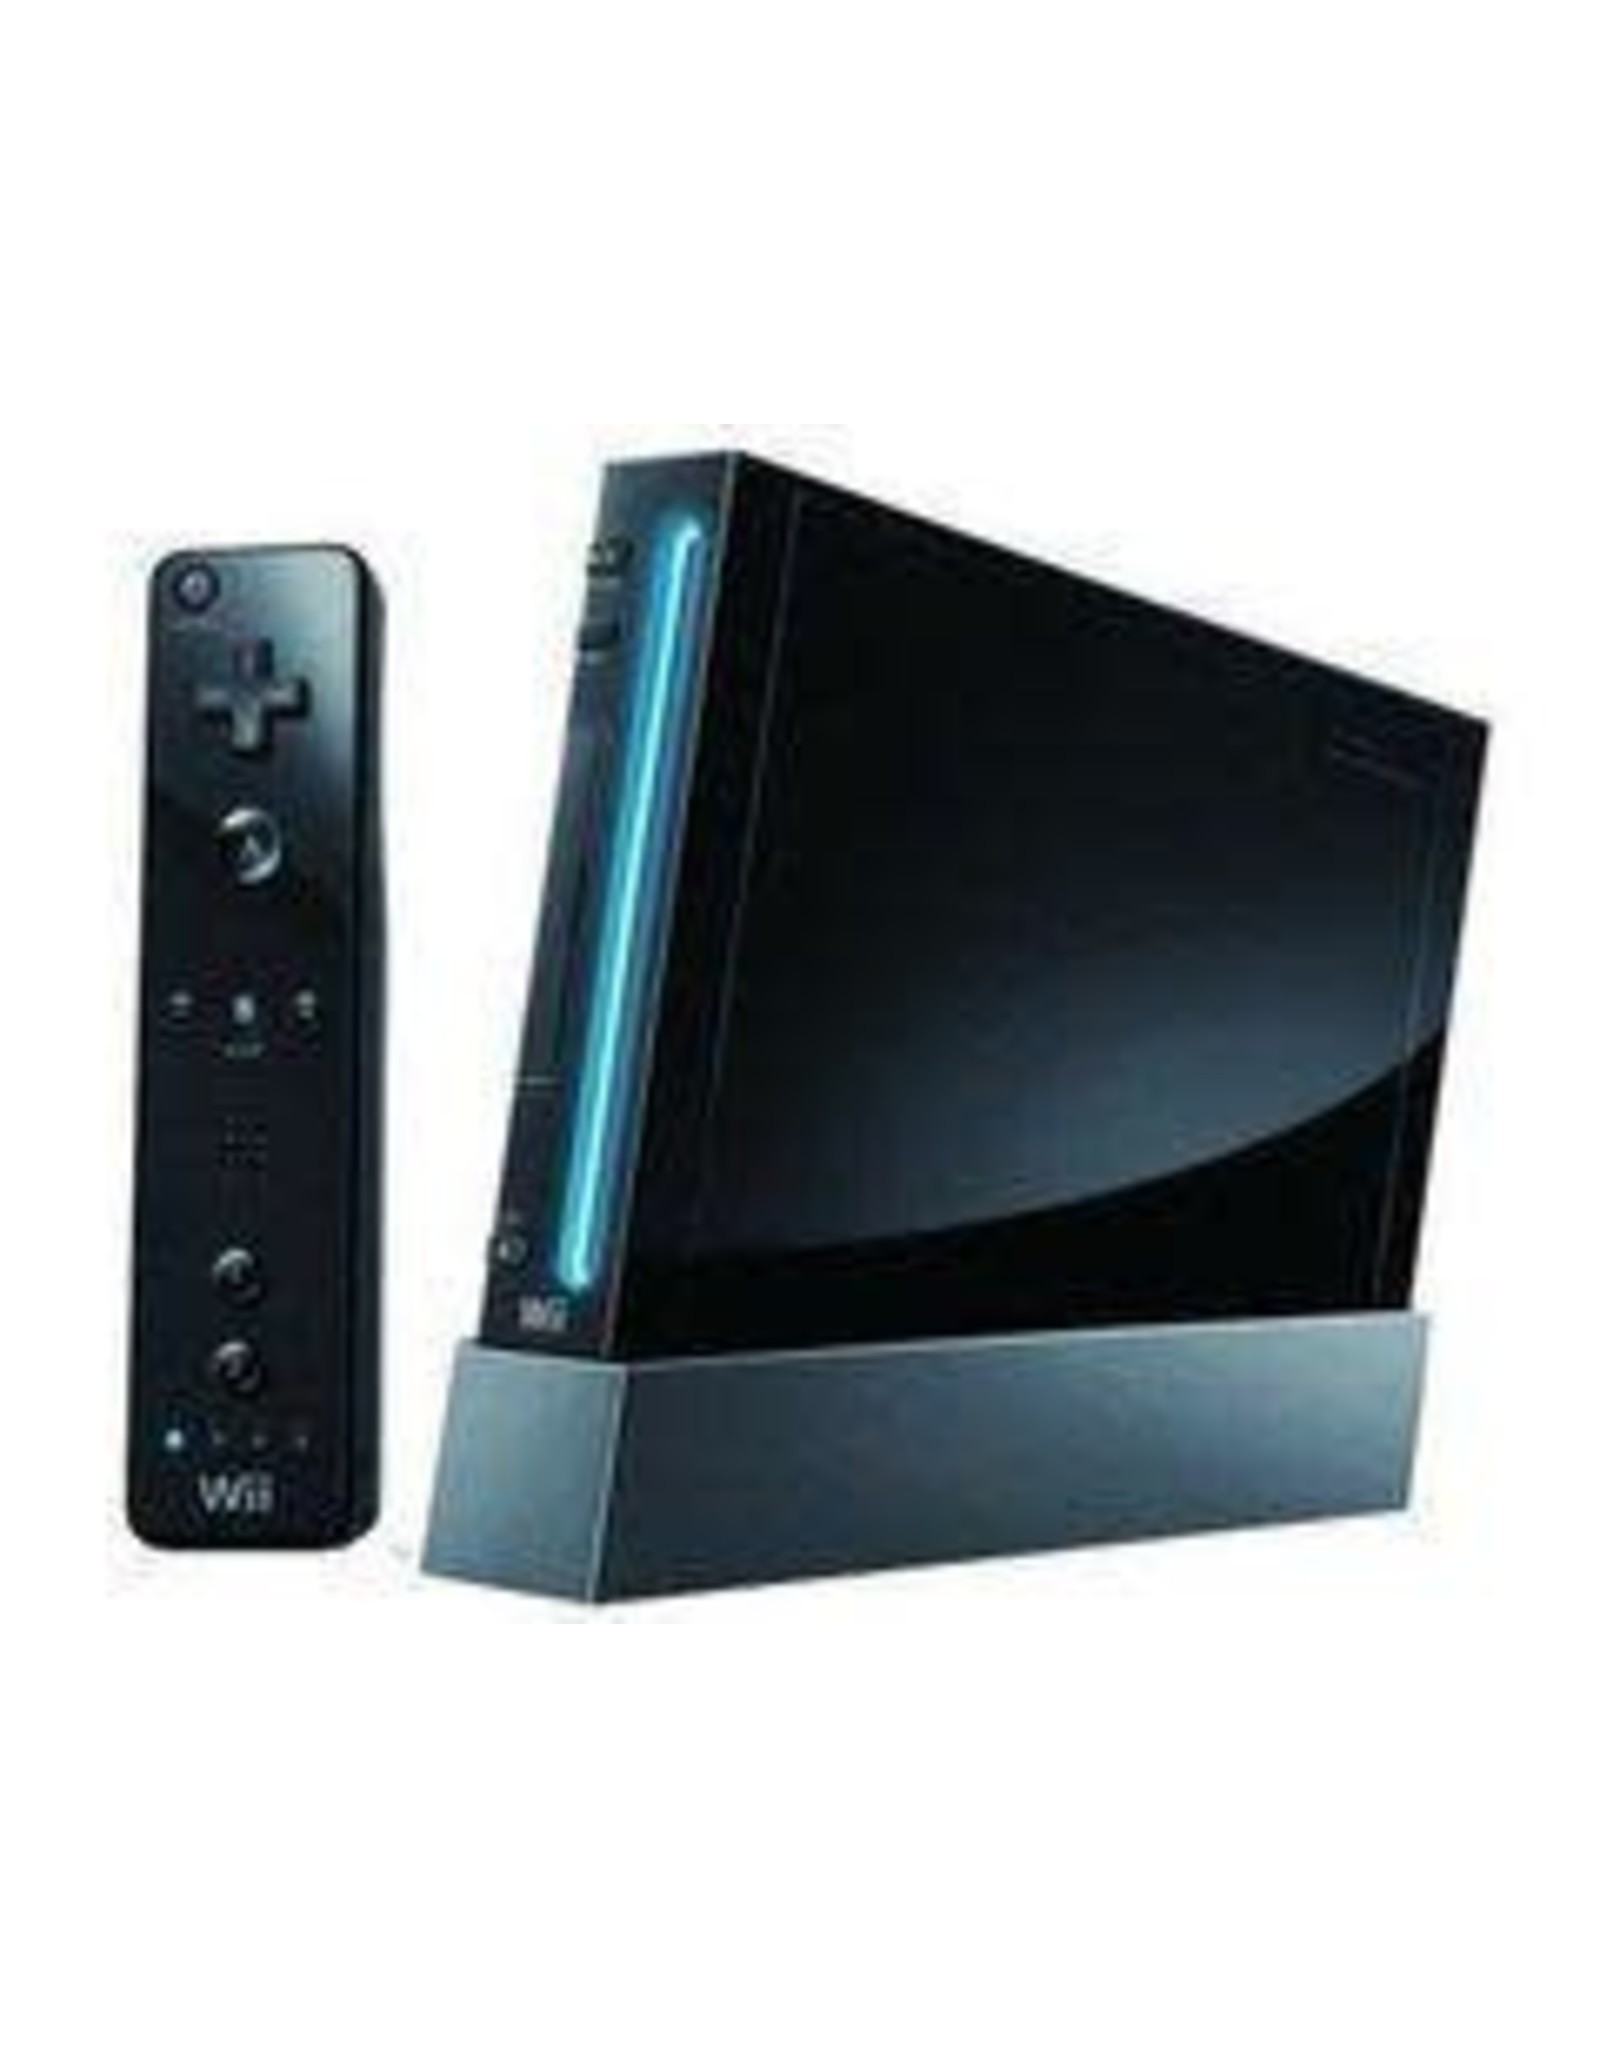 Wii Black Nintendo Wii System (None Backwards Compatability)